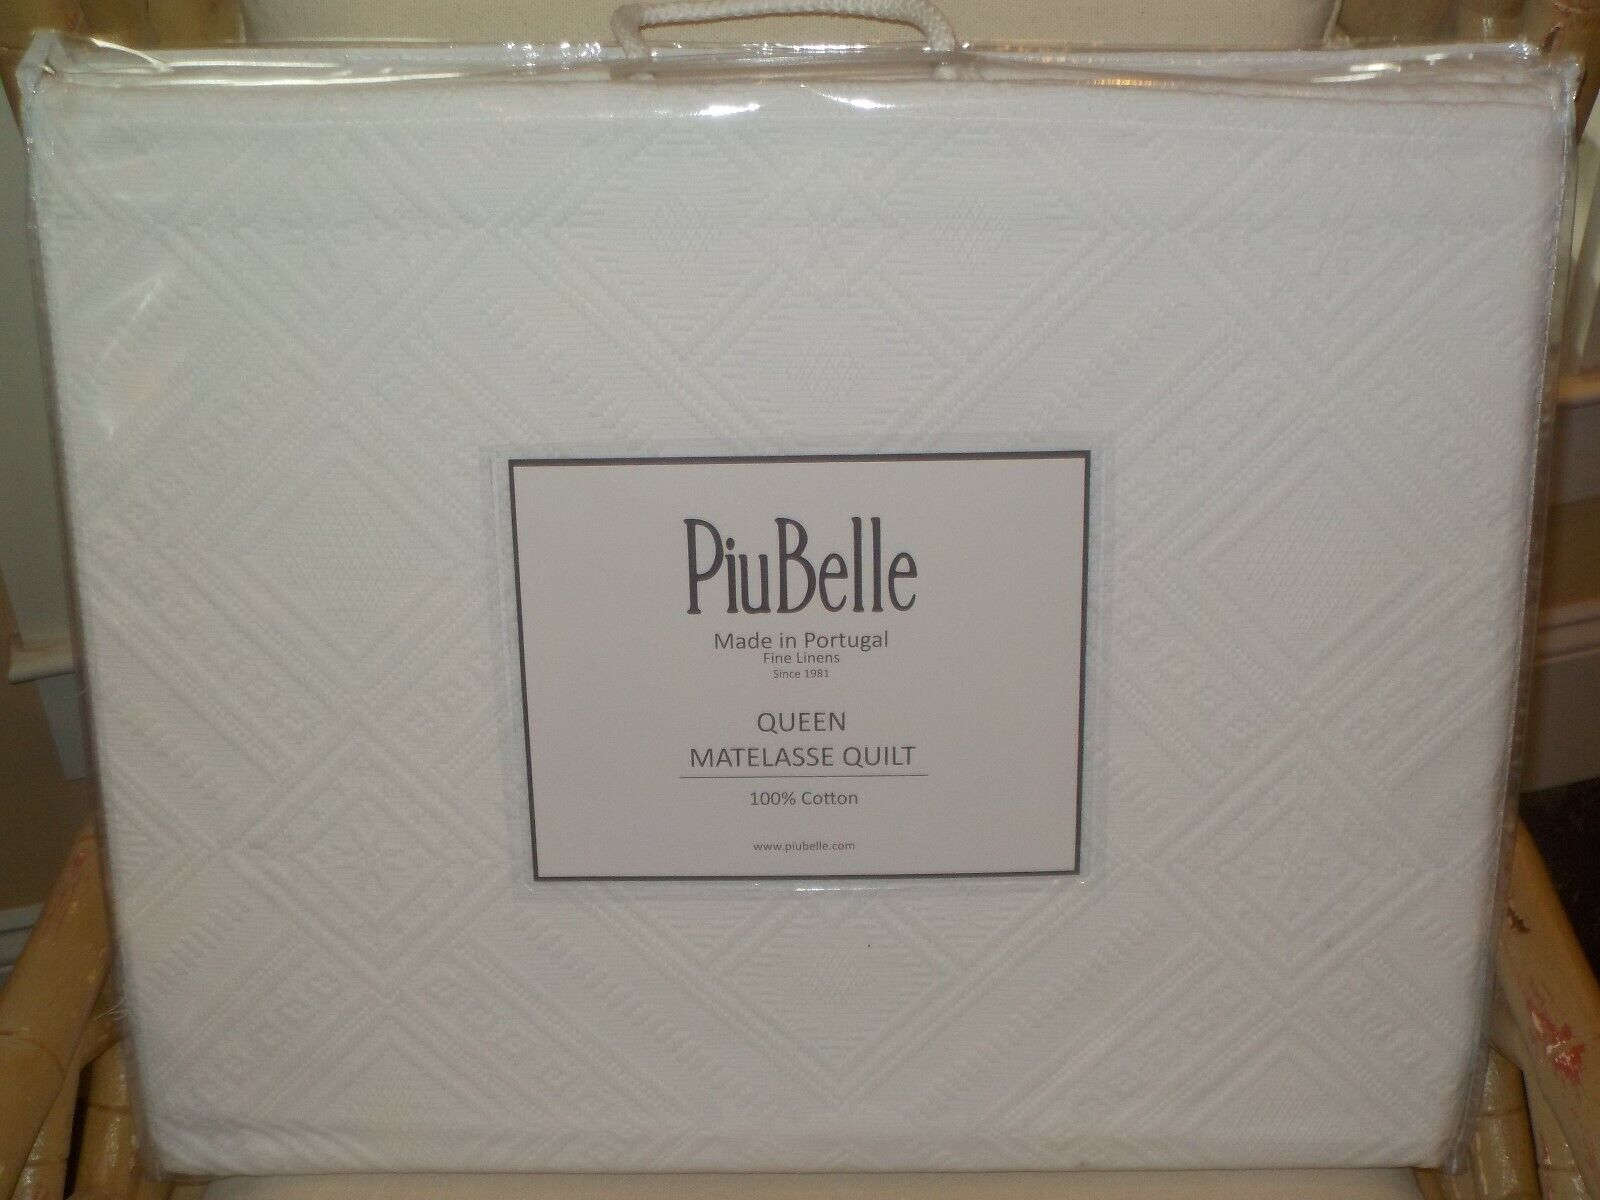 PIUBELLE WOVEN DIAMOND PATTERN 100% COTTON MATELASSE QUEEN QUILT